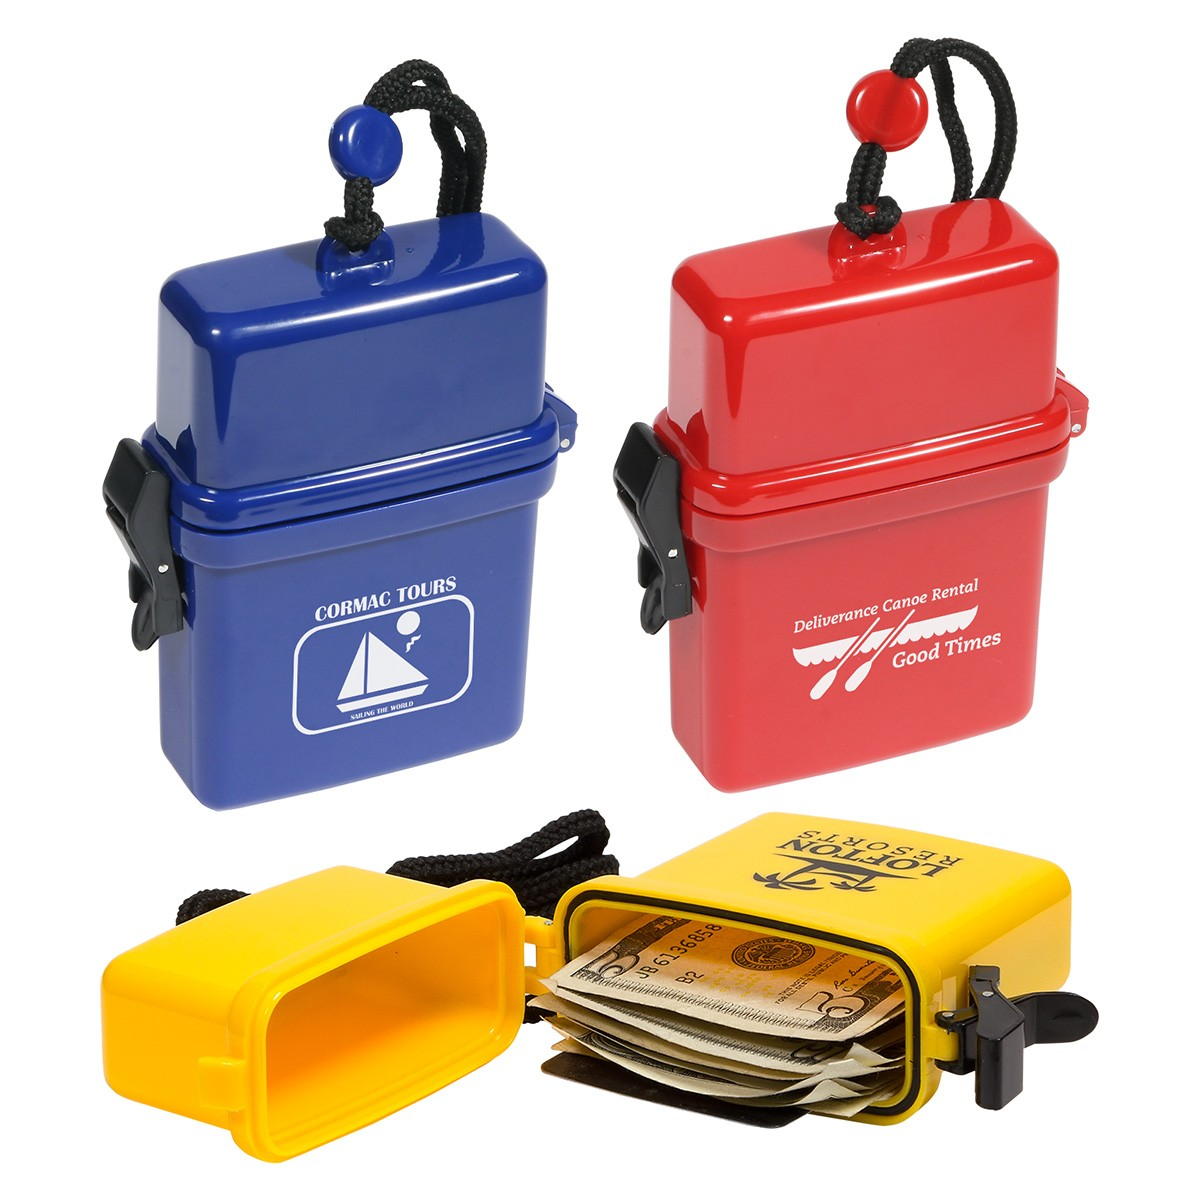 "Waterproof Storage Case  Protects valuables while near water Includes rugged lanyard Secure clasping latch. Complies with Prop 65. 4.75"" L x 3.25"" W x 1.25"" H"